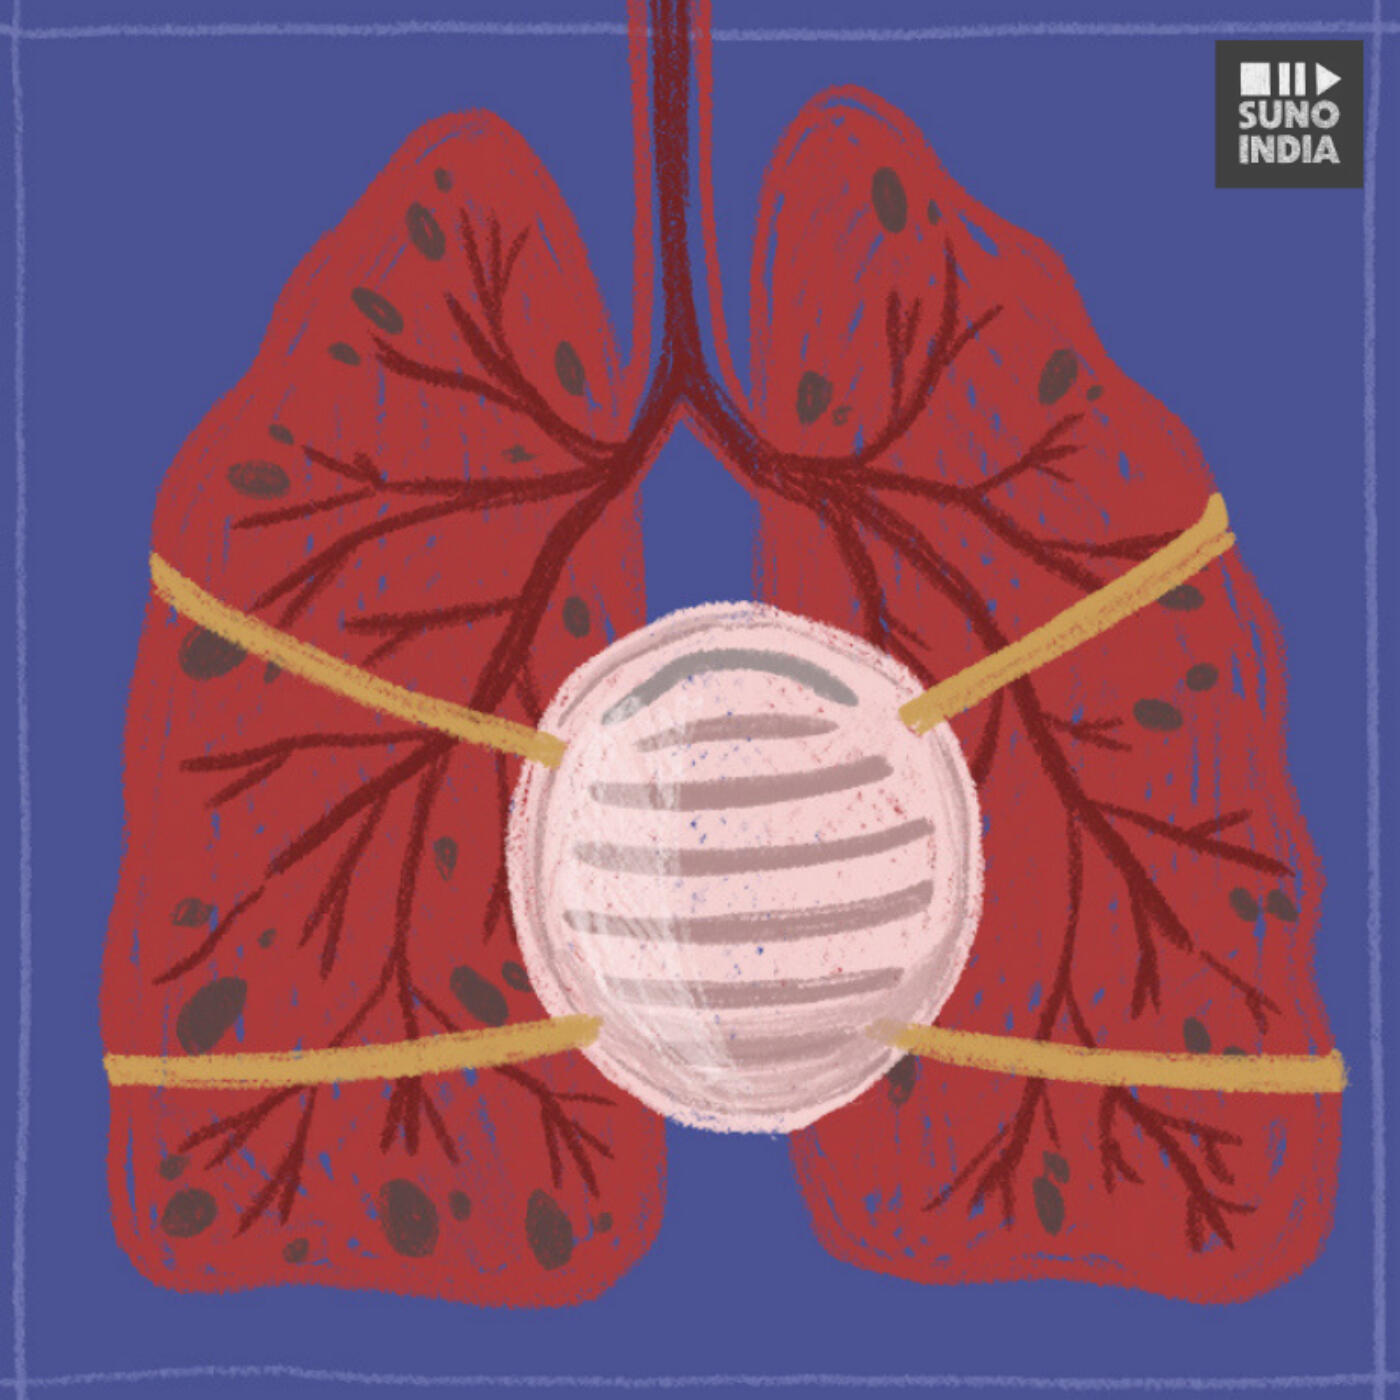 Decoding the spread of TB and its cures